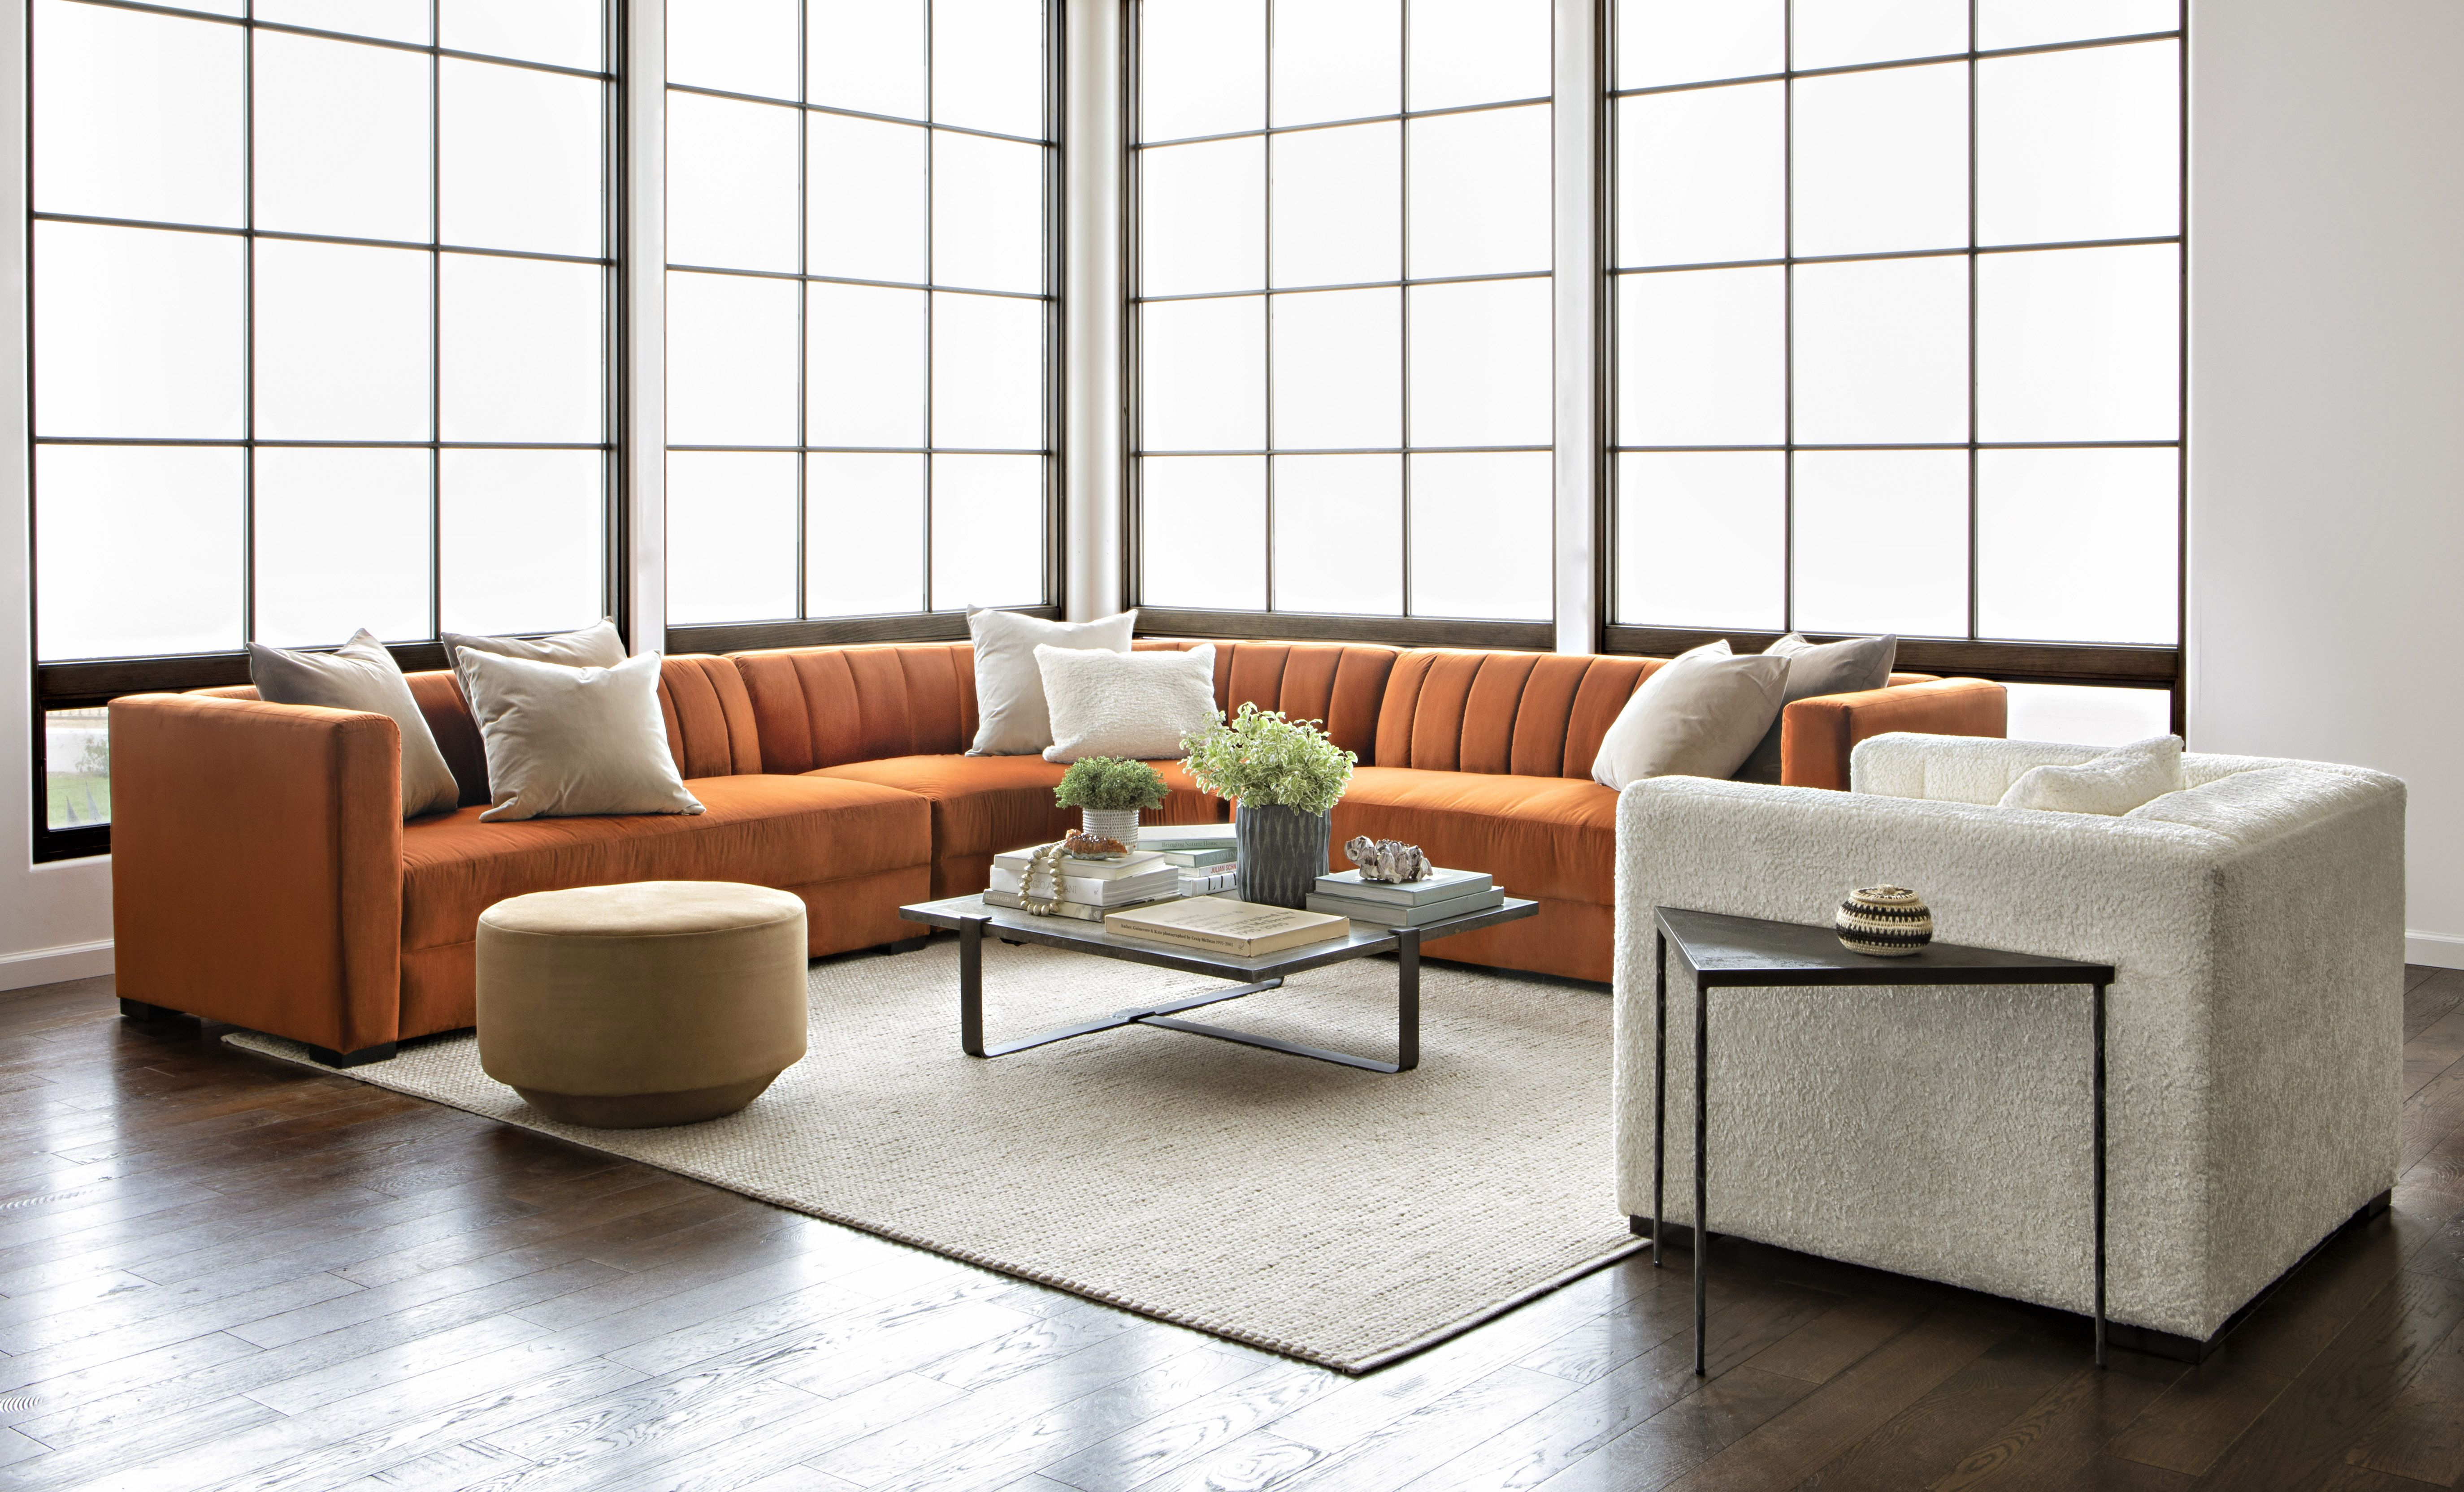 Soane 3 Piece Sectionalnate Berkus And Jeremiah Brent | Nate + With Regard To Matteo Arm Sofa Chairs By Nate Berkus And Jeremiah Brent (View 14 of 25)